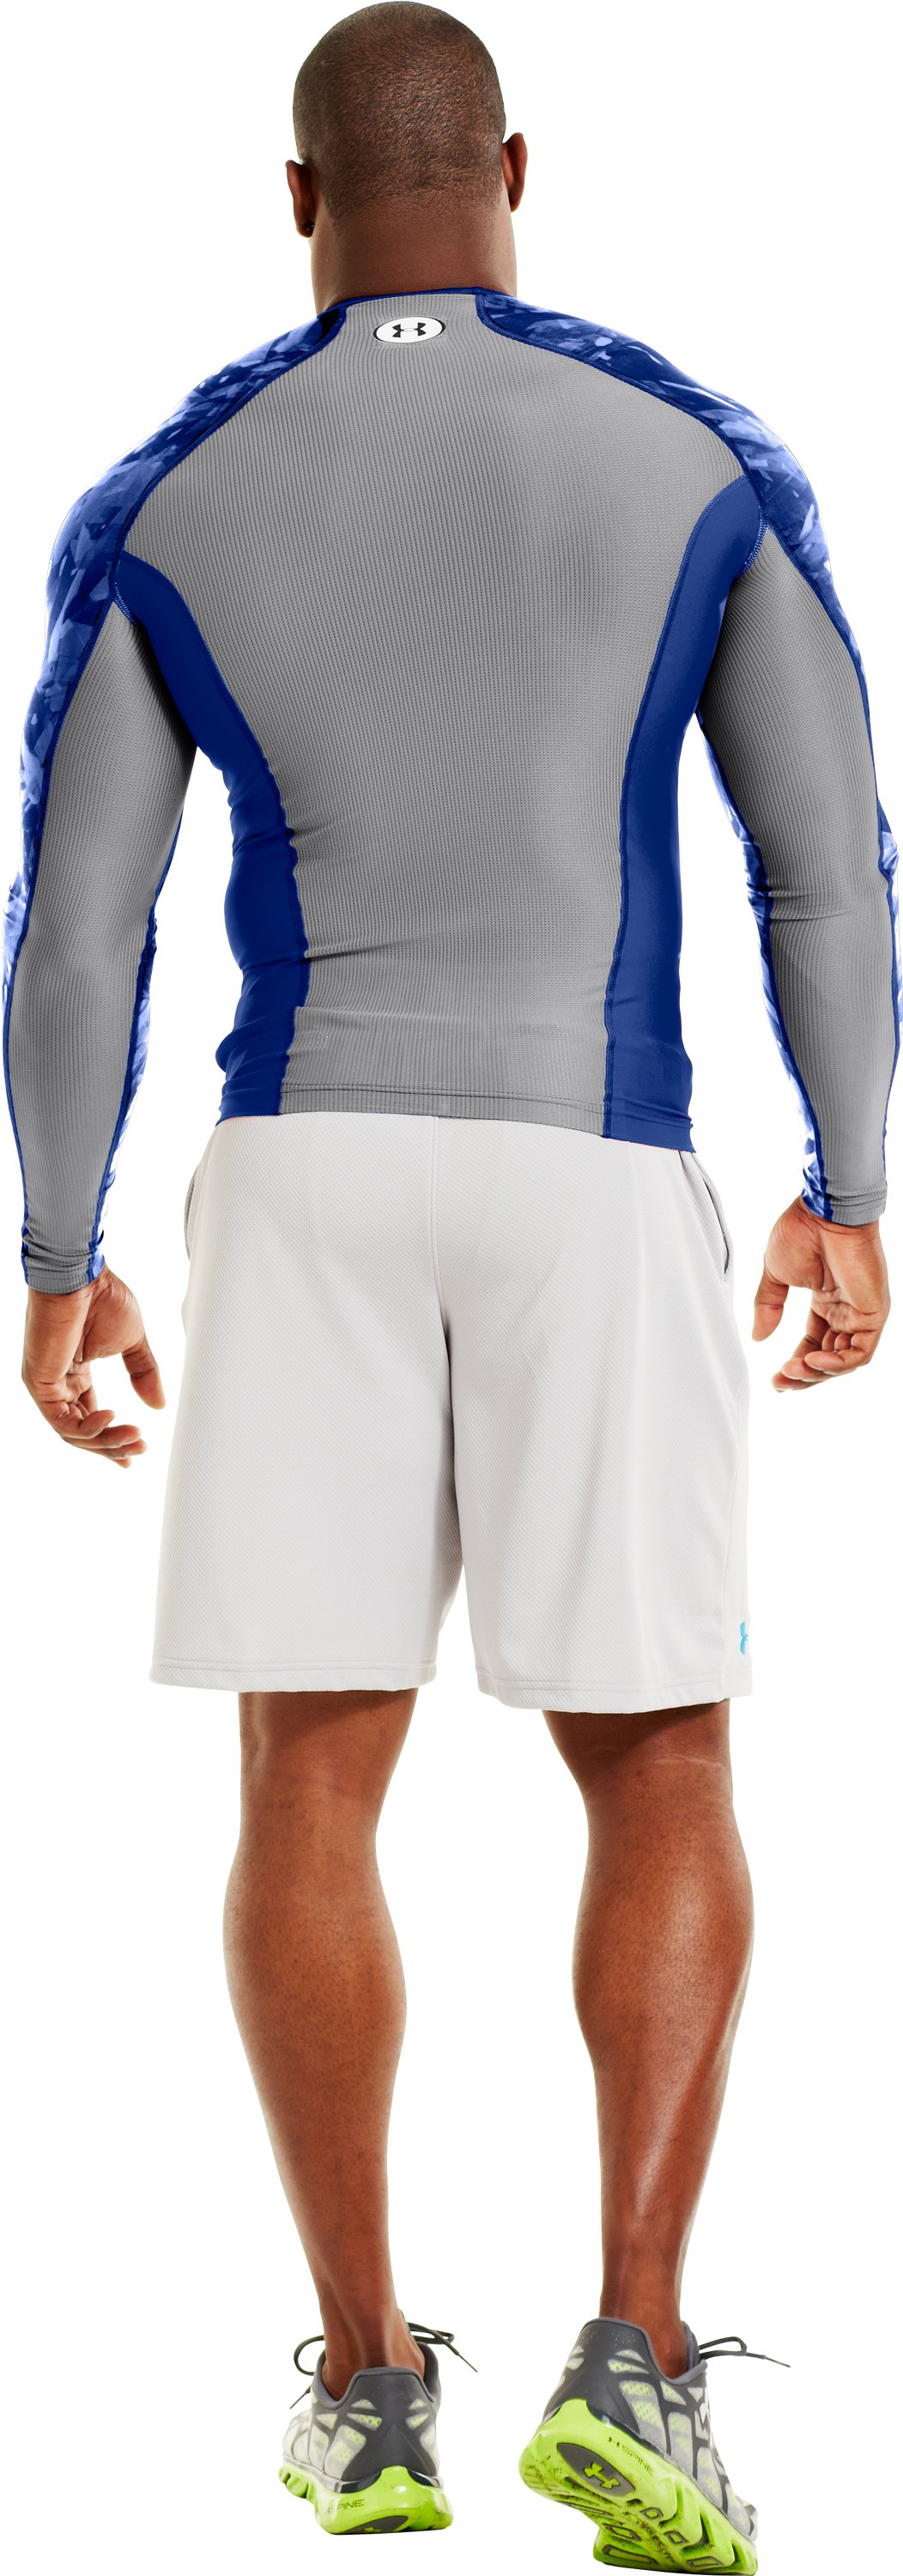 Men's NFL Combine Authentic Compression Long Sleeve, Royal, Back